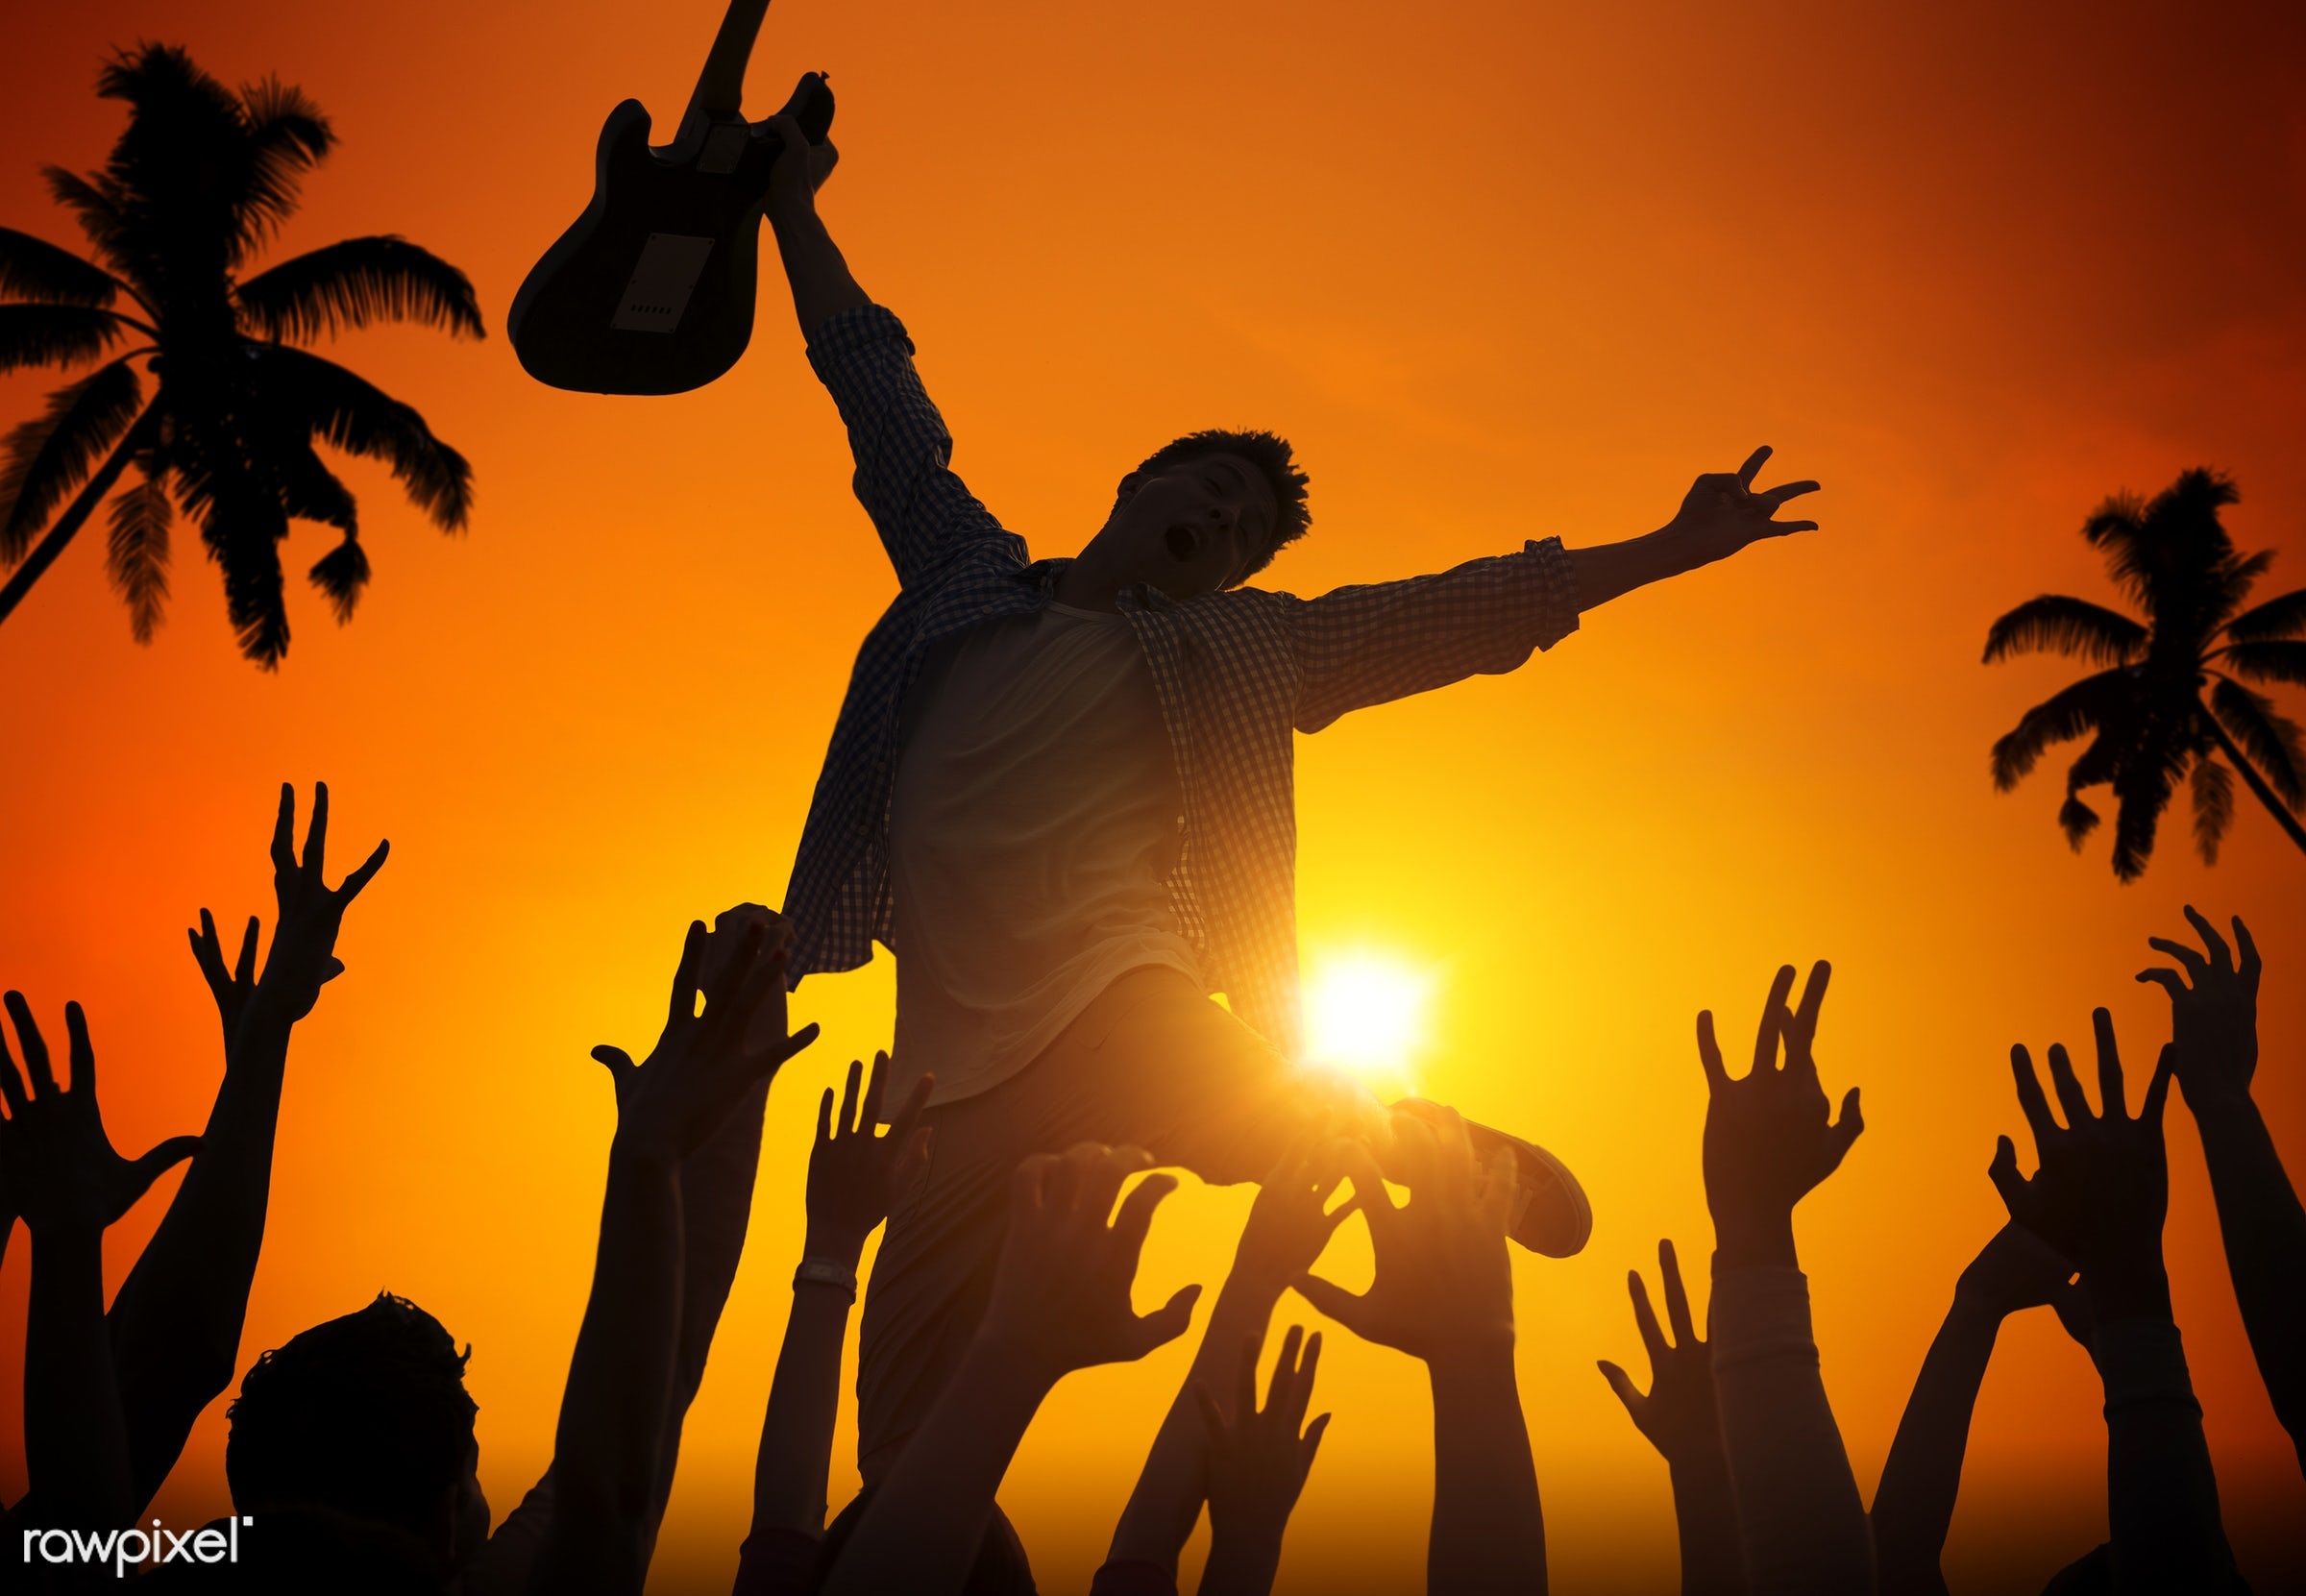 beer, alcohol, applauding, arms outstretched, arms raised, audience, back lit, beach, blue, celebration, coconut palm tree,...